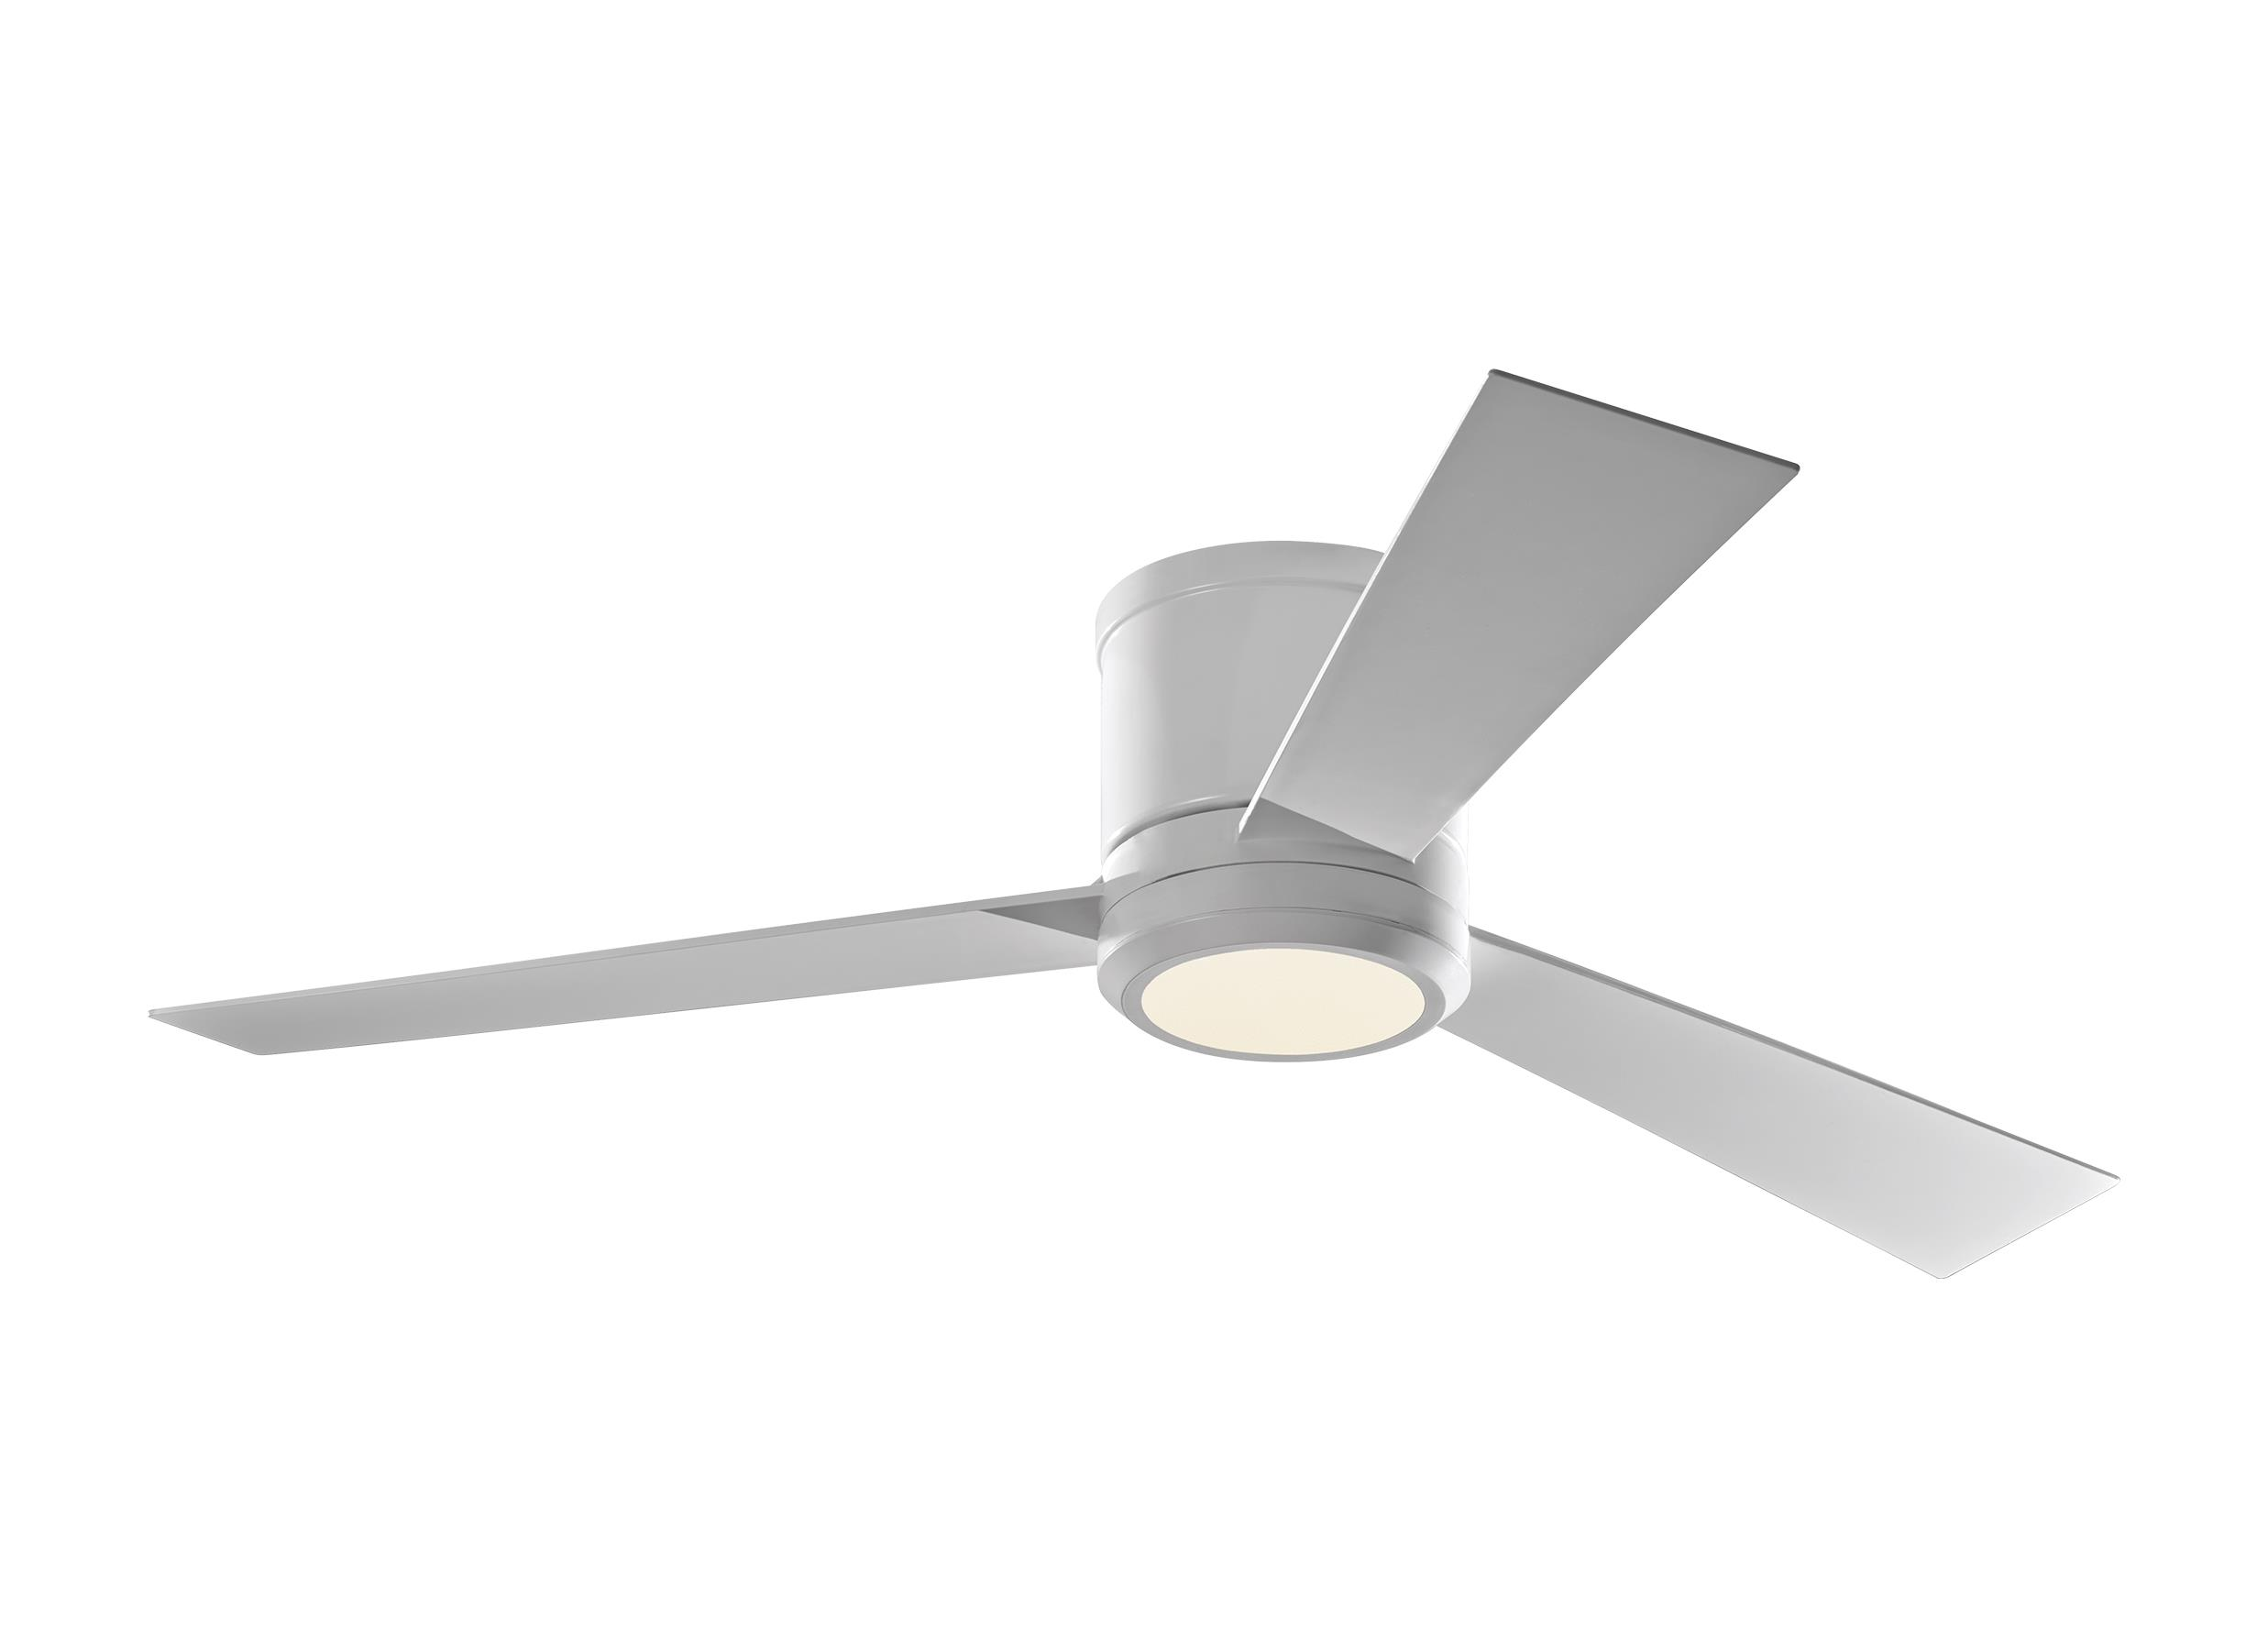 Ceiling fan by the monte carlo fan company loading zoom aloadofball Gallery